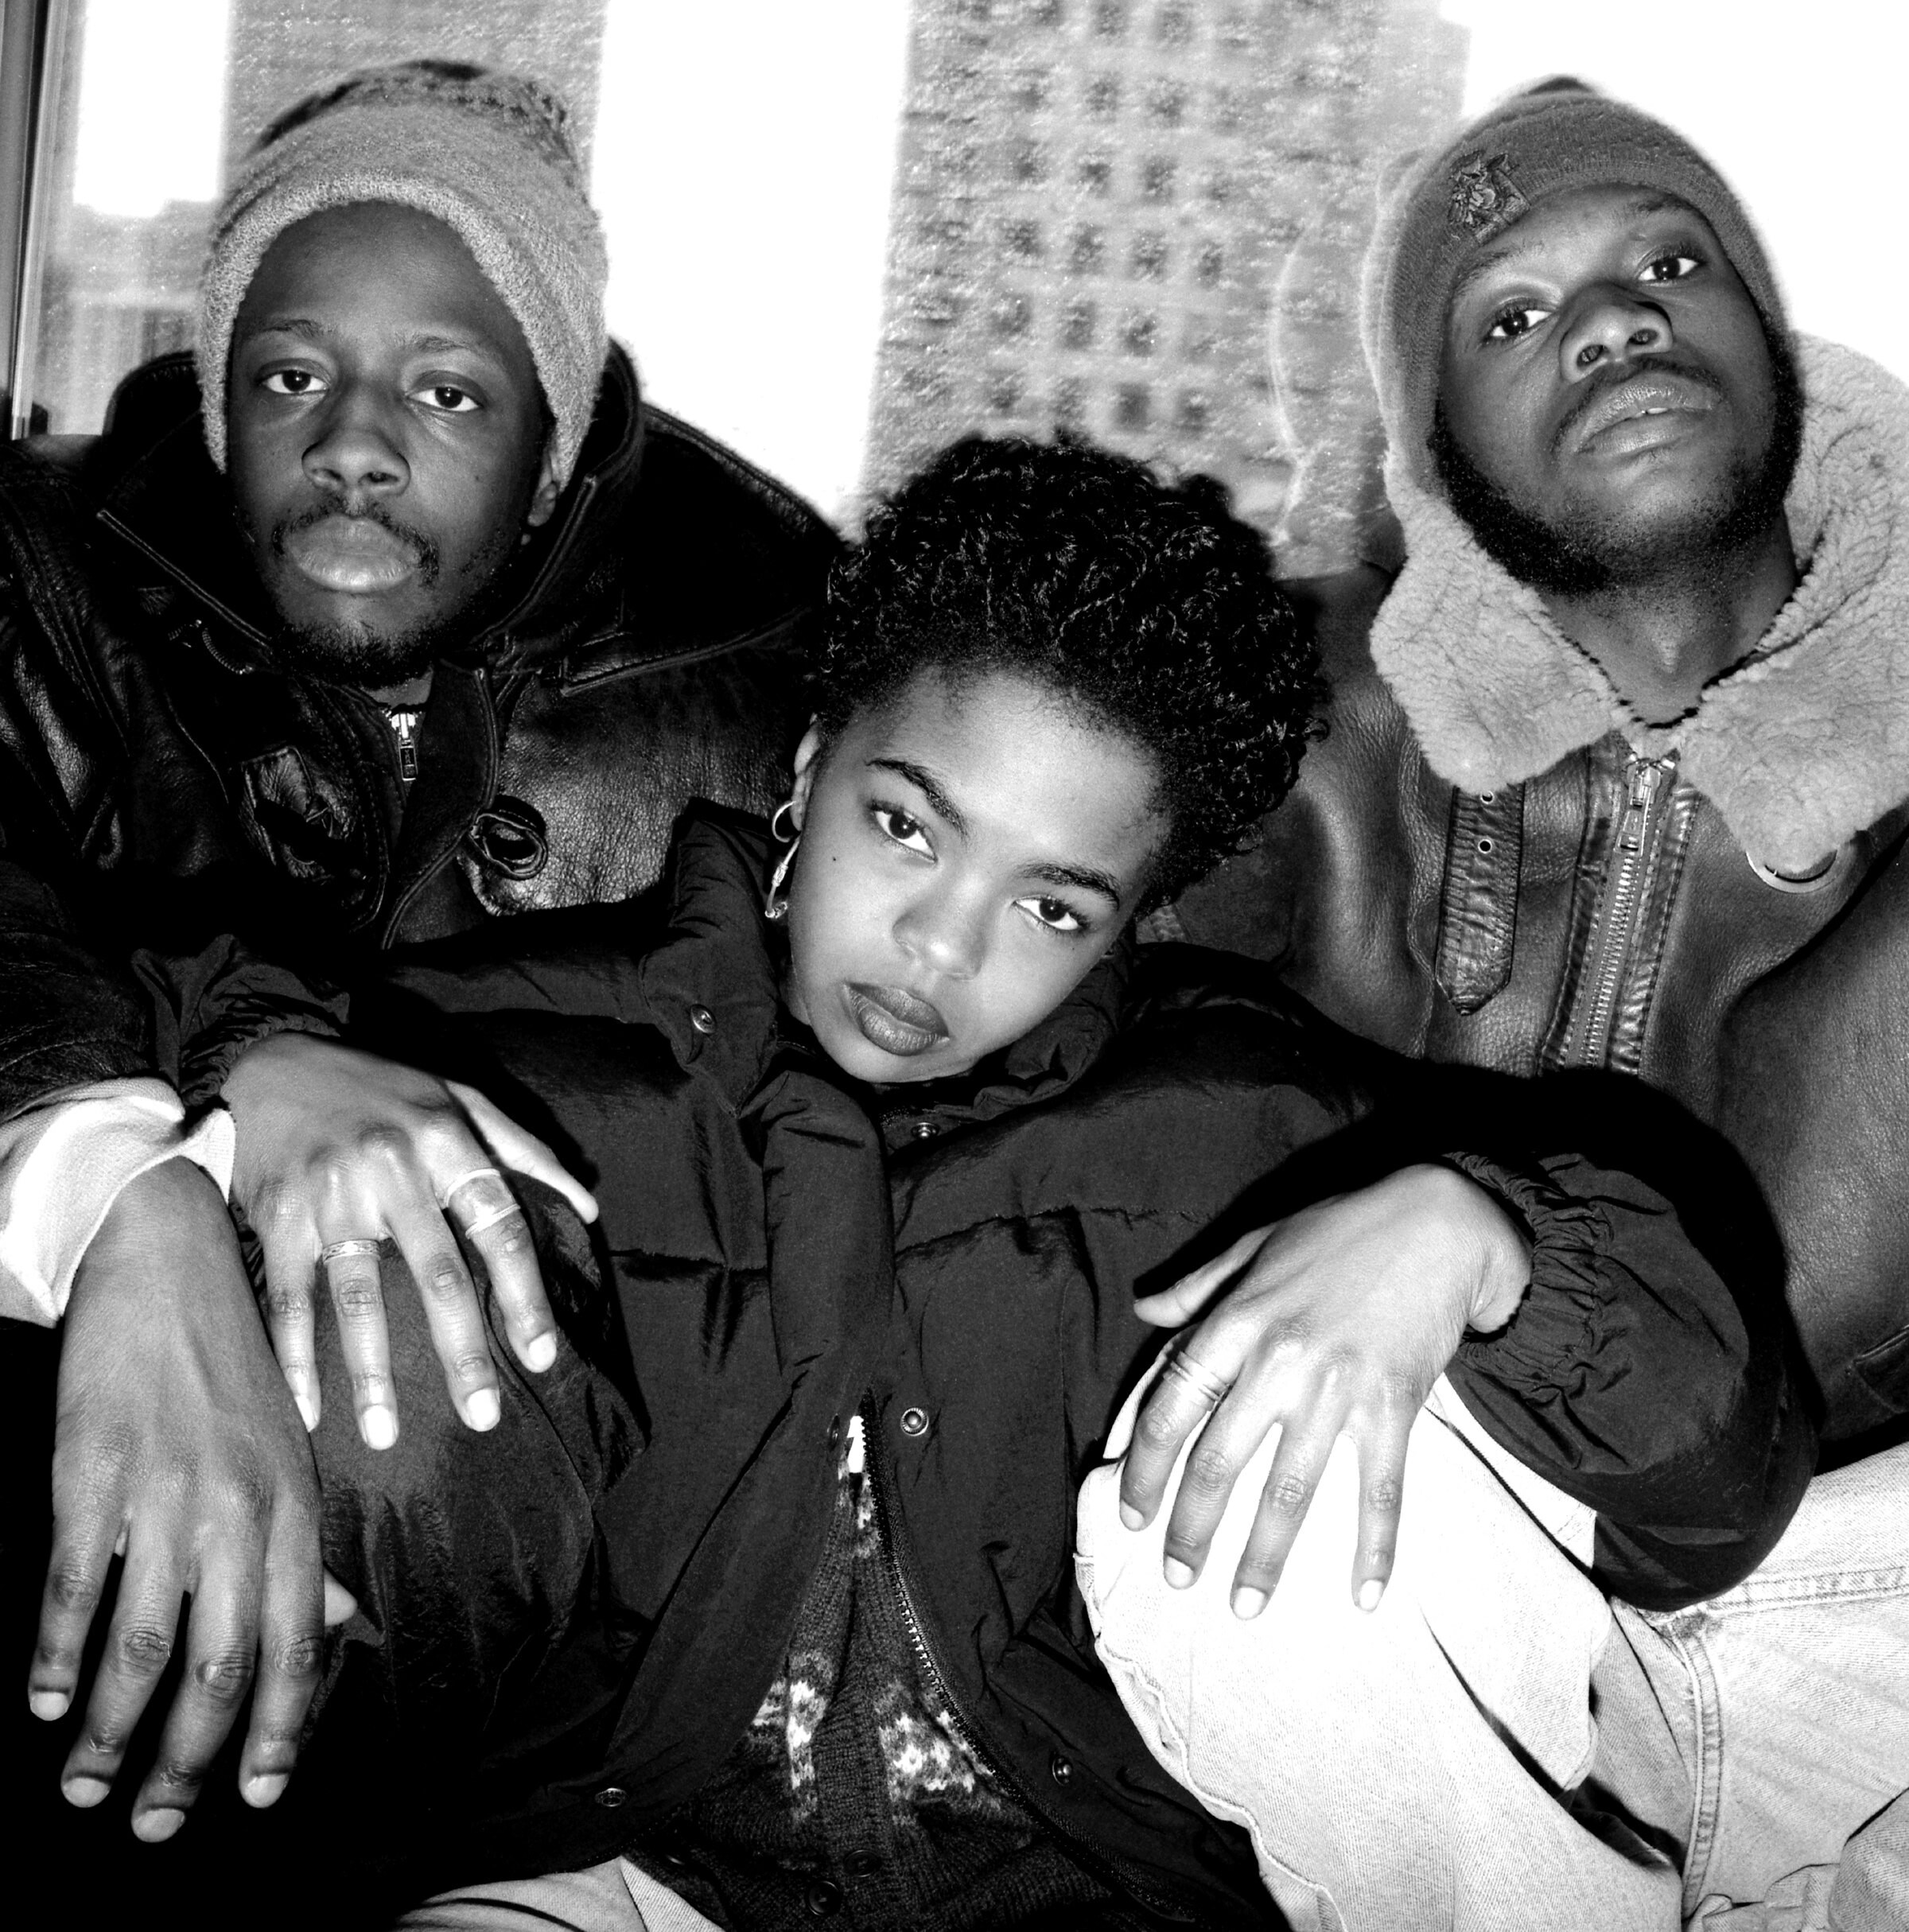 <i>David Corio/Michael Ochs Archives/Getty Images</i><br/>The Fugees are reuniting for their first shows in 15 years.